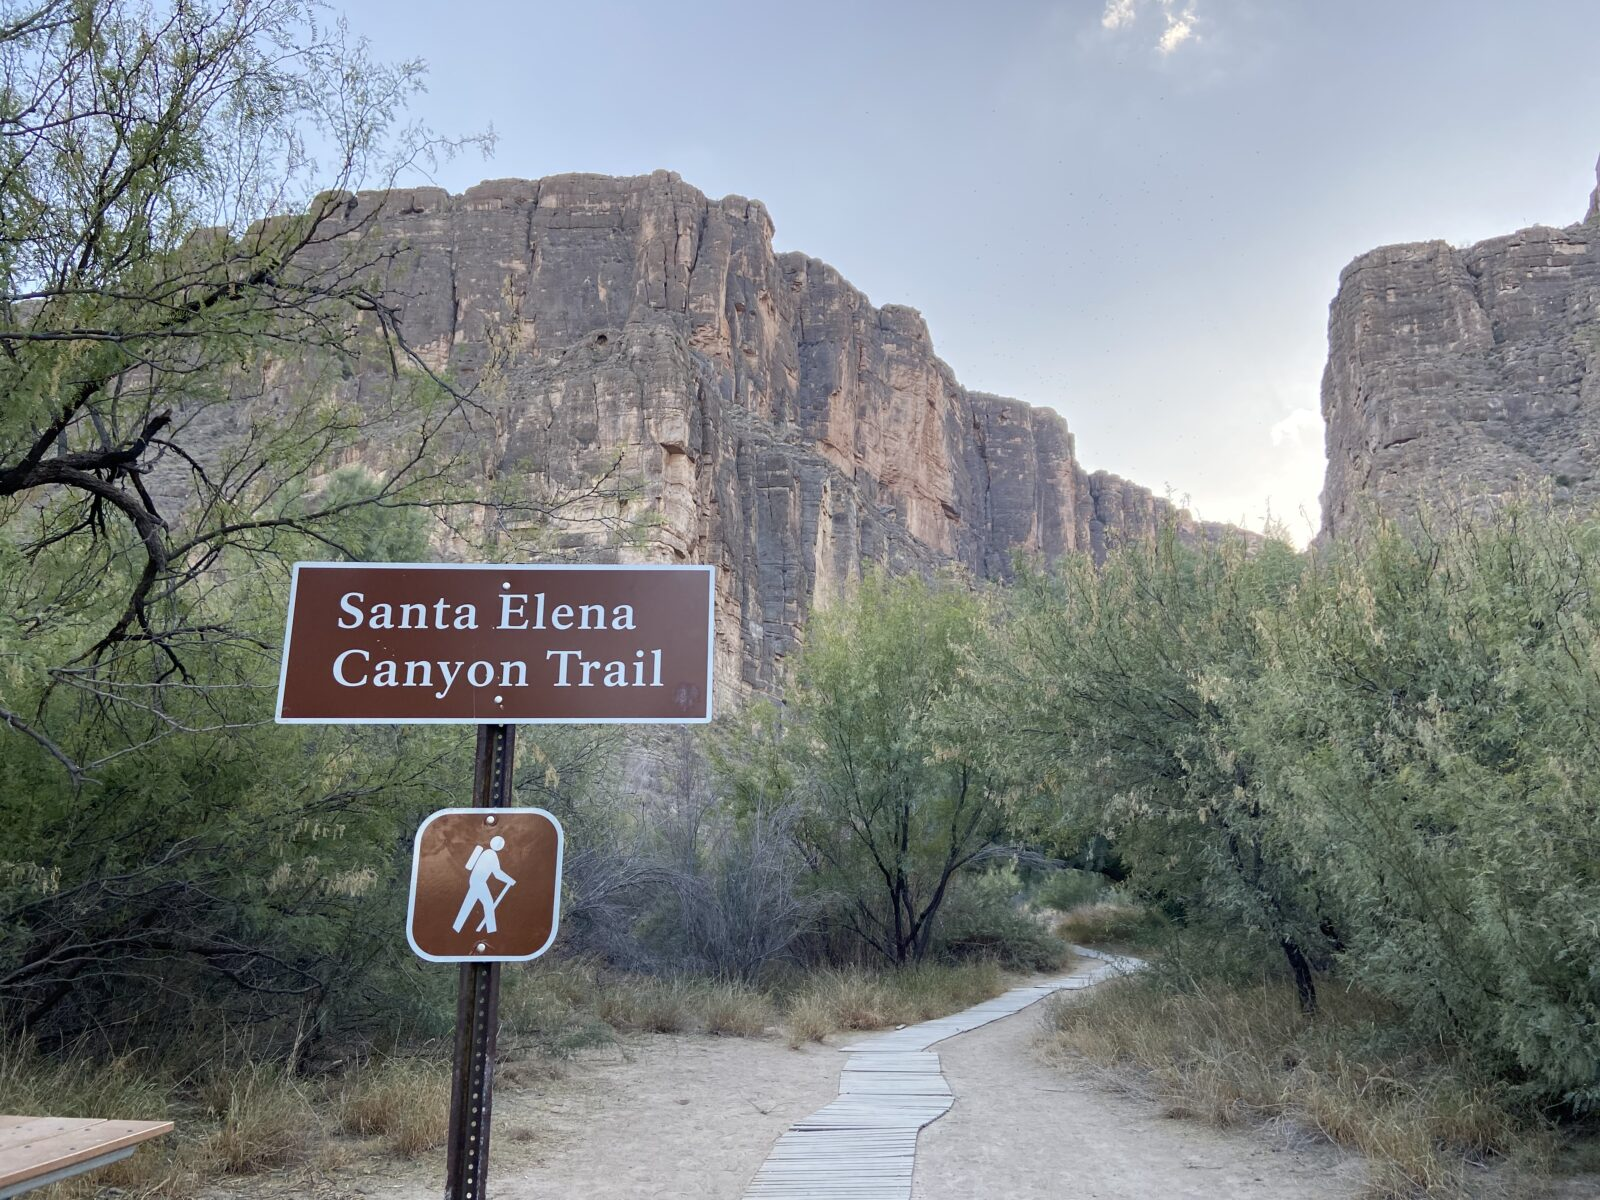 The Santa Elena Canyon Trail is short and will not lead you very far into the canyon because of the river.